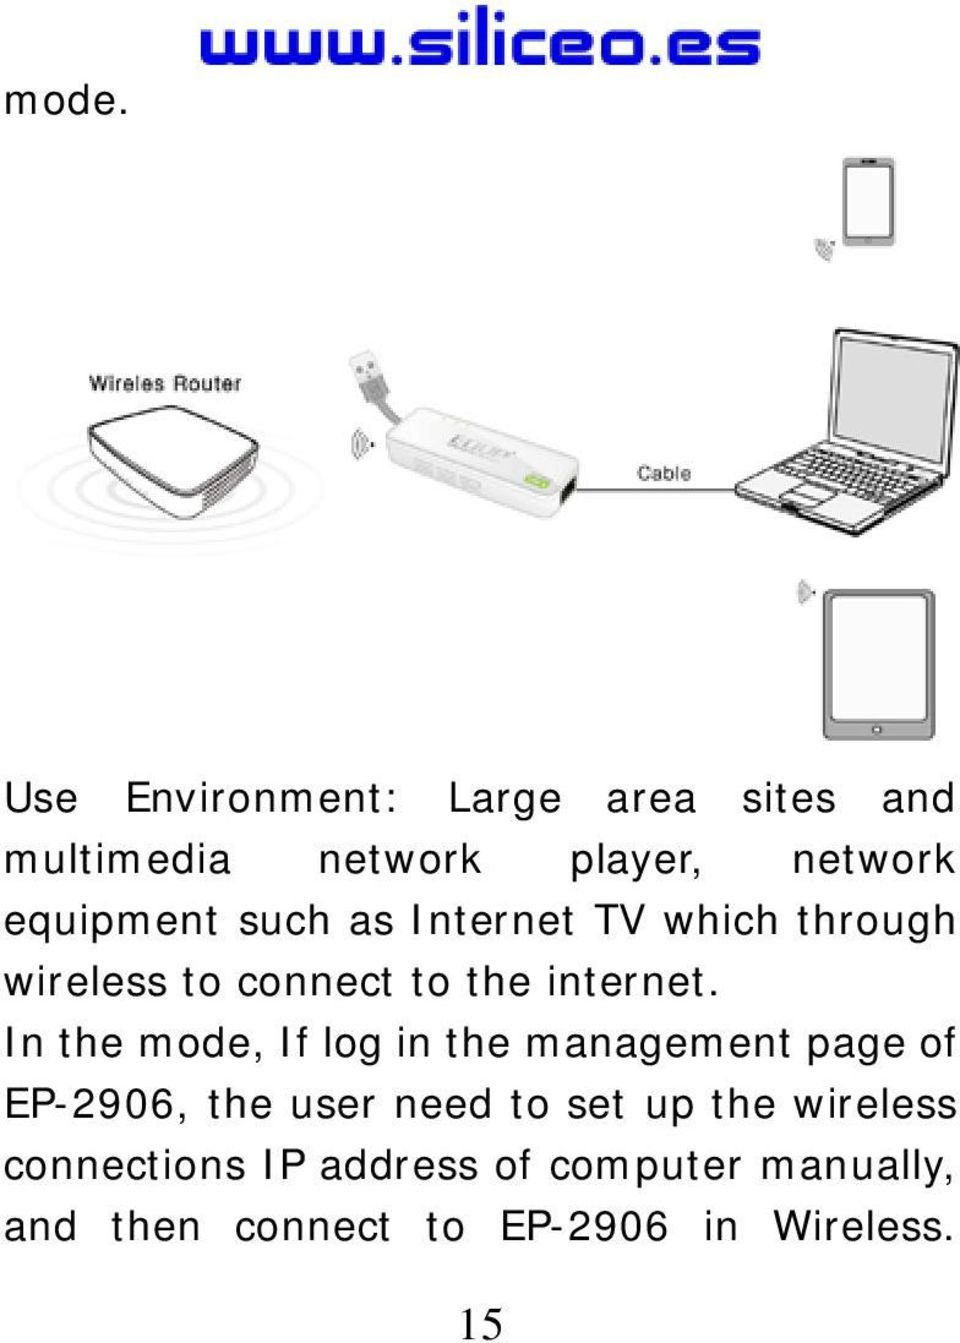 In the mode, If log in the management page of EP-2906, the user need to set up the